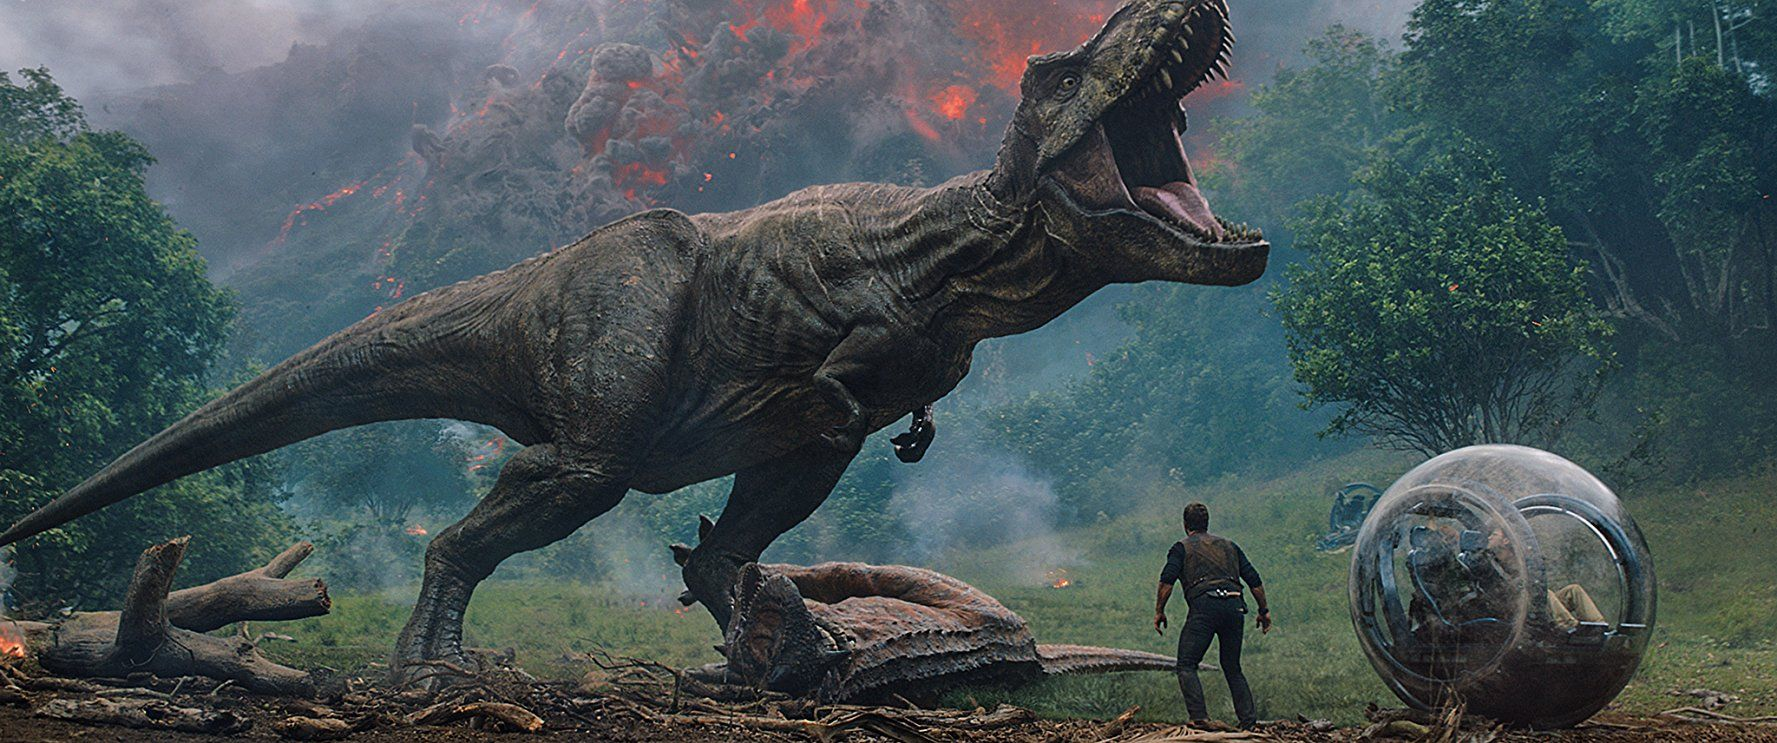 in JURASSIC WORLD: FALLEN KINGDOM (2018)